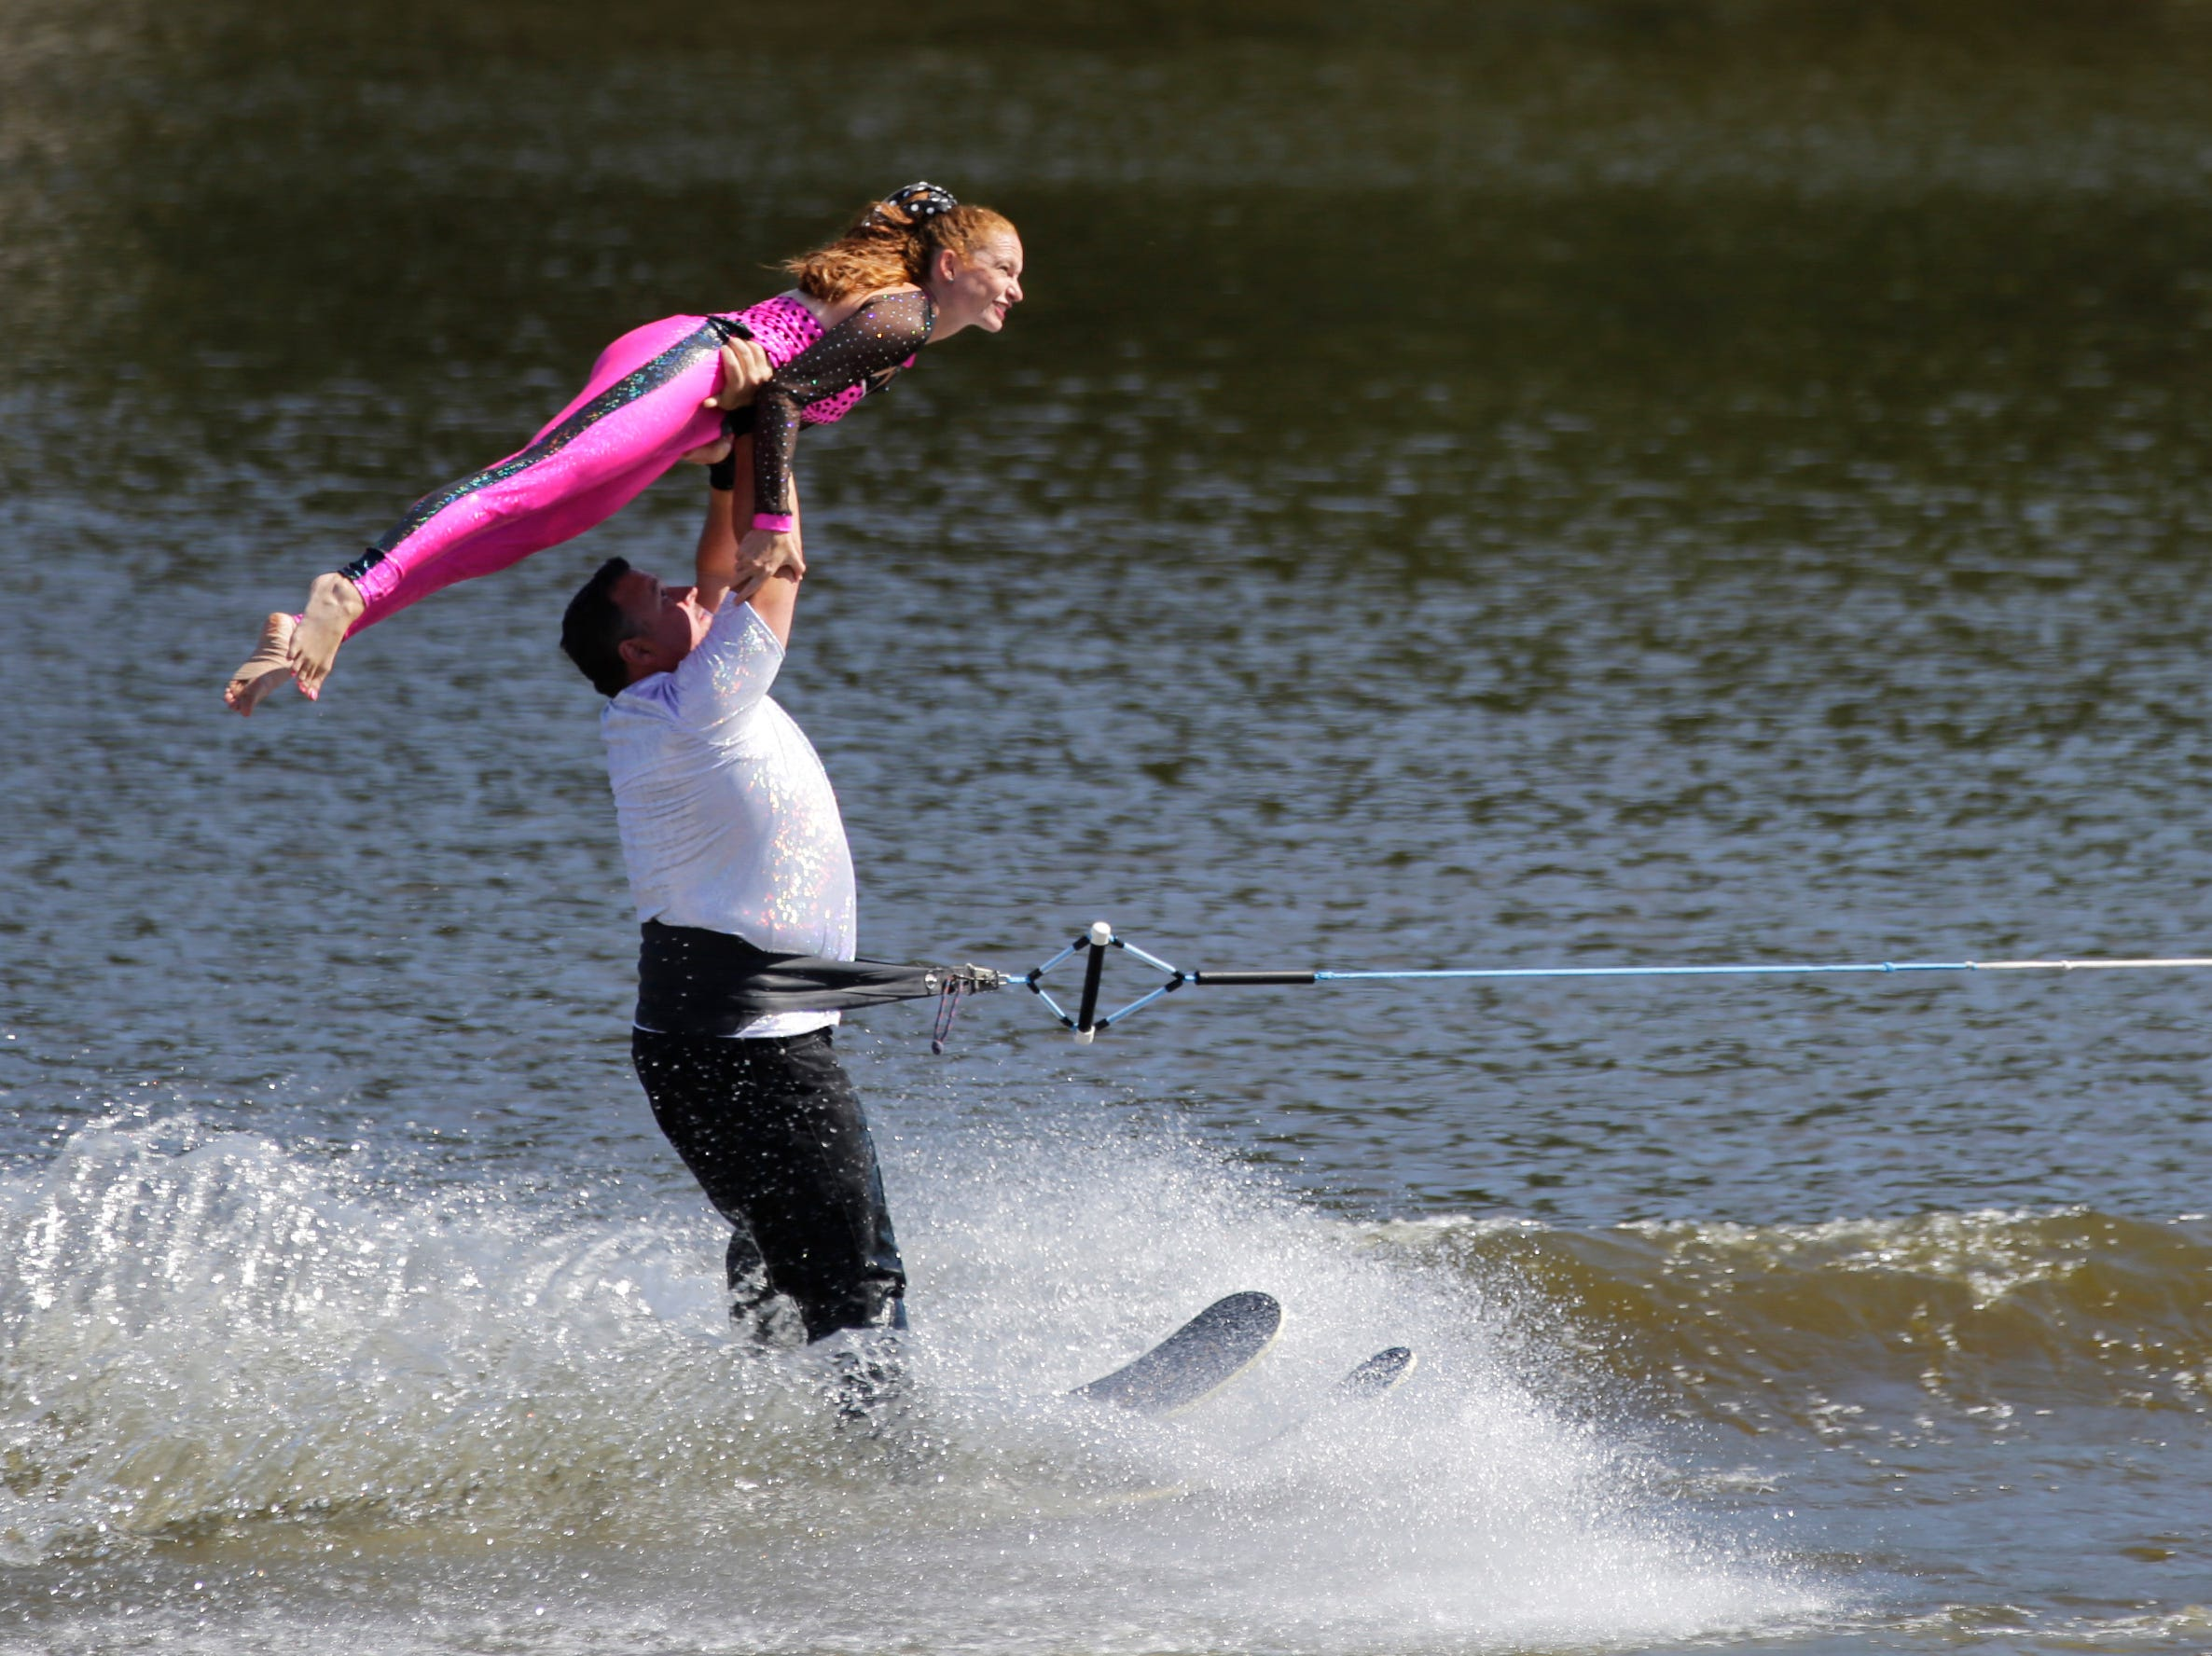 Will and Danielle Bazeley compete in the doubles category during the Wisconsin State Water Ski Show Championships on Lake Wazeecha in Kellner Thursday, July 19, 2018.